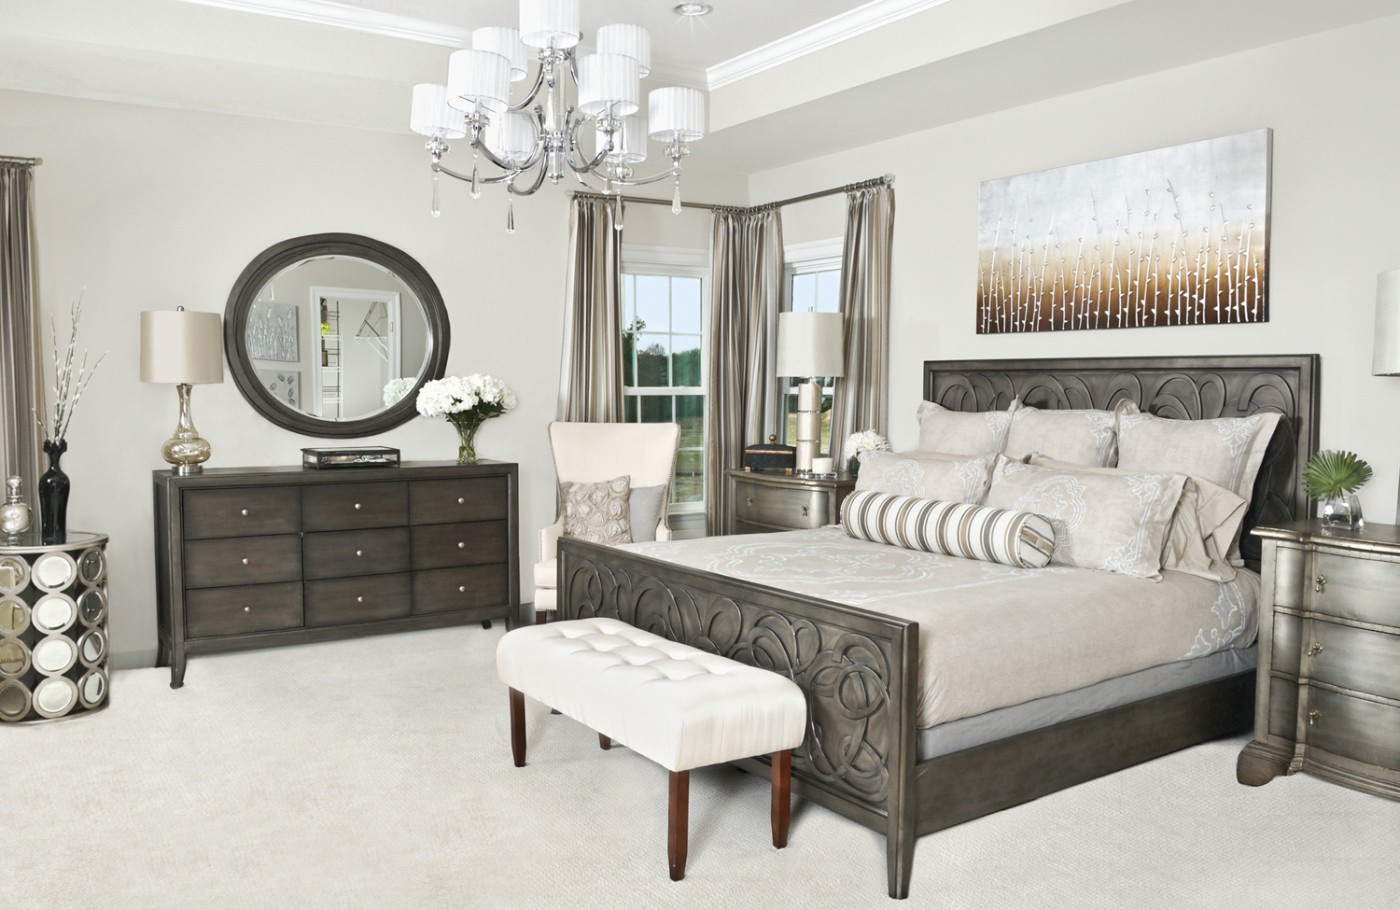 Pictures Of Model Homes Interiors Inspiration Model Home Interiors » Model Homes Review